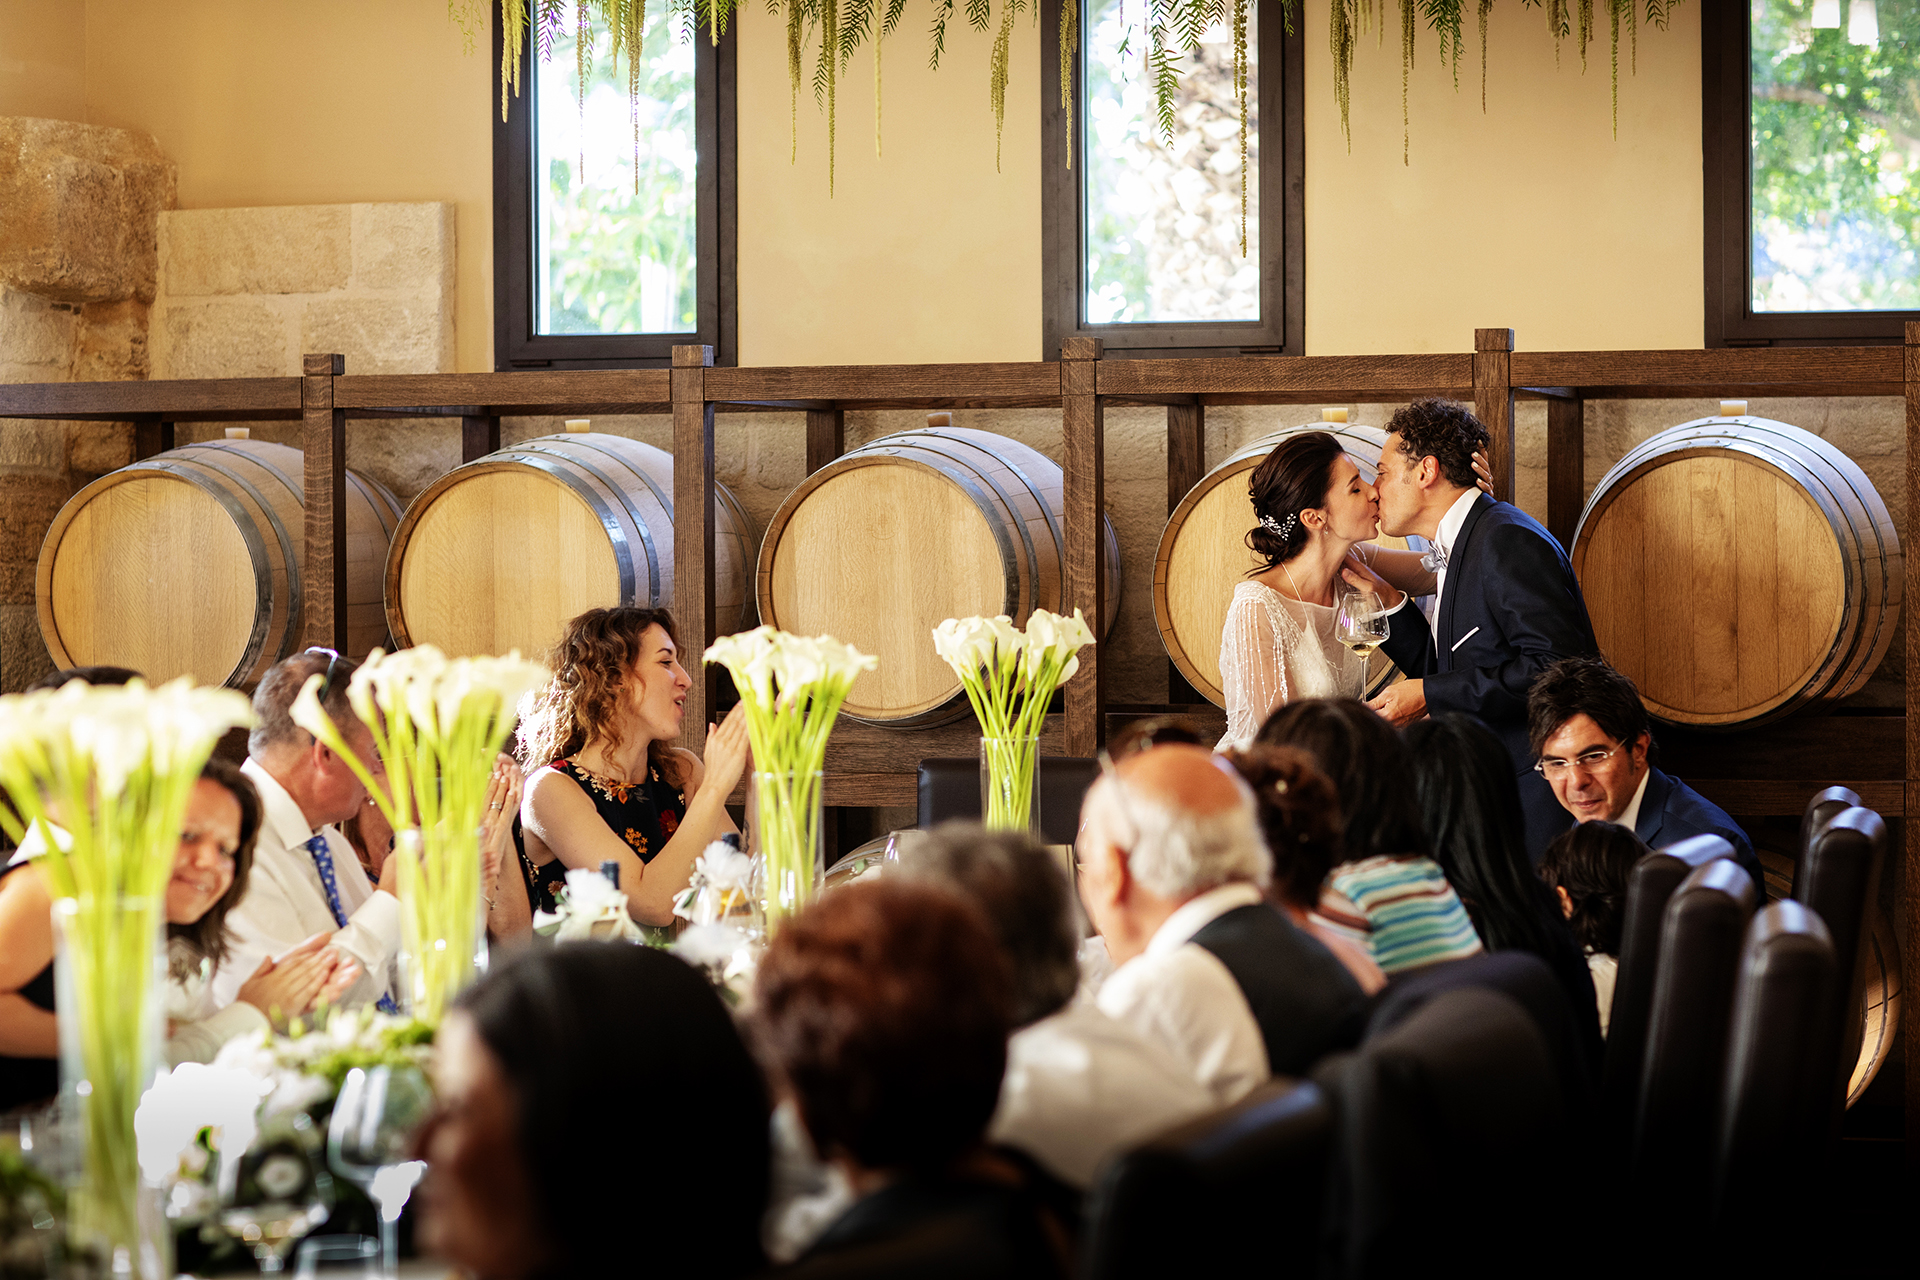 Trapani, Sicily, Italy Elopement Reception Image | The reception was held at the Baglio Sorìa, where everyone was seated around a single table